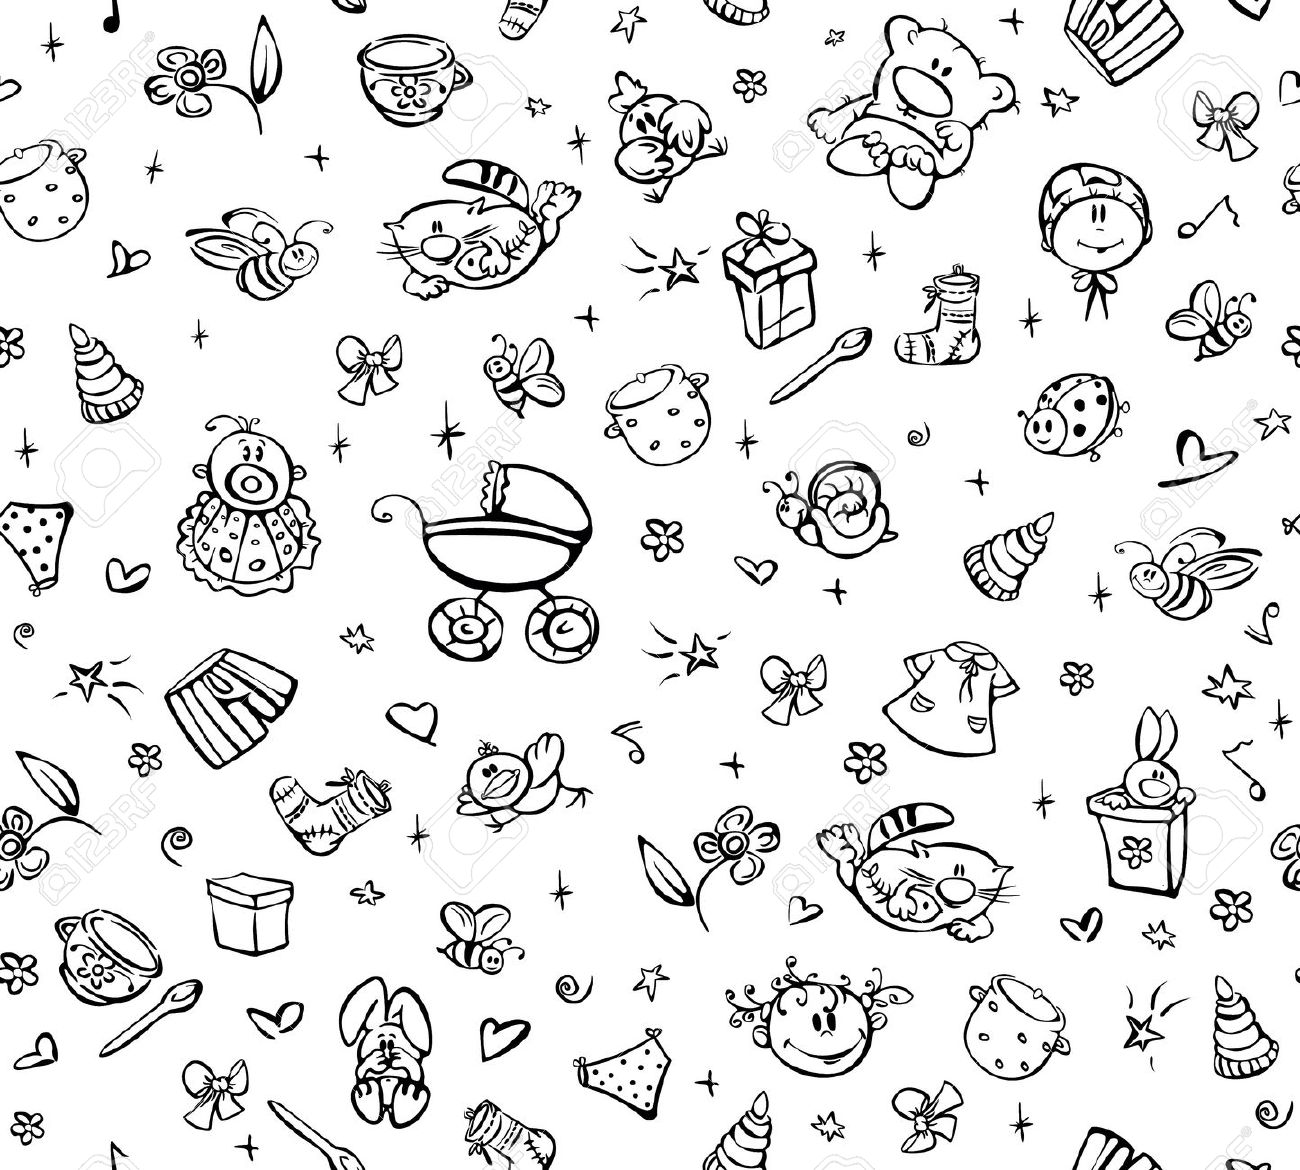 Cute baby clipart patterns png freeuse stock Cute baby clipart patterns - ClipartFest png freeuse stock